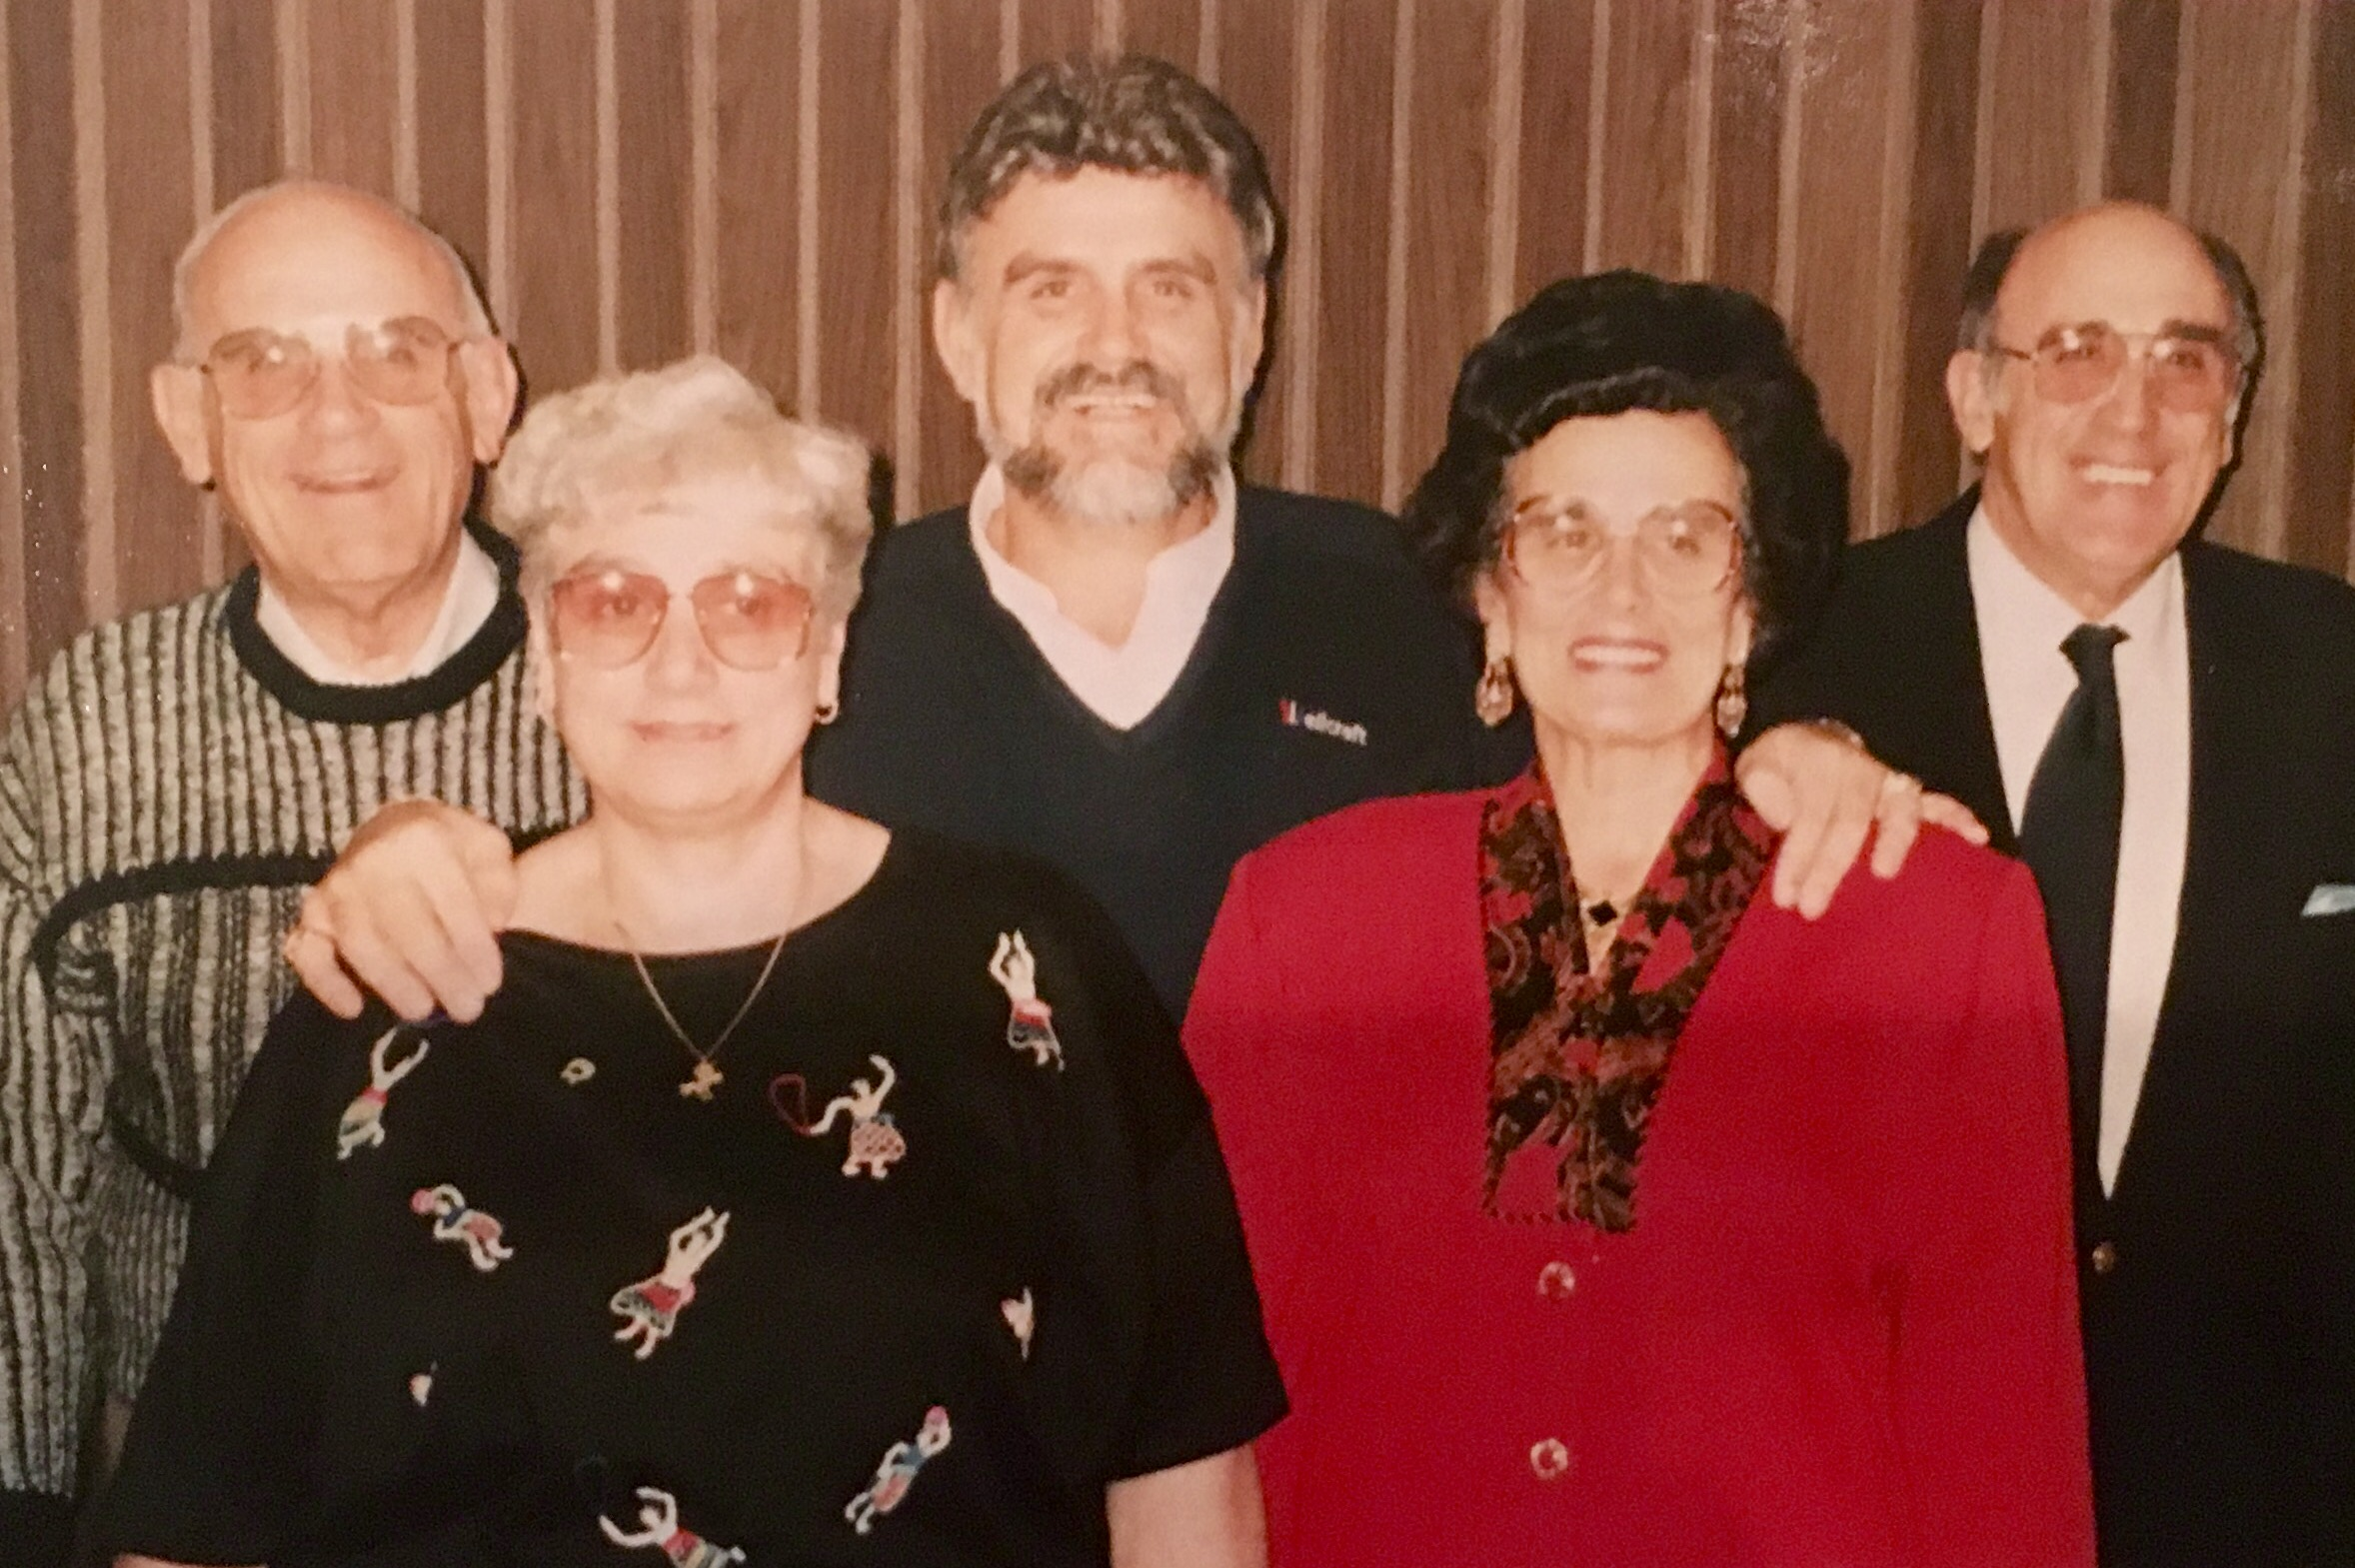 My dad and his siblings. Picture taken in 1991.